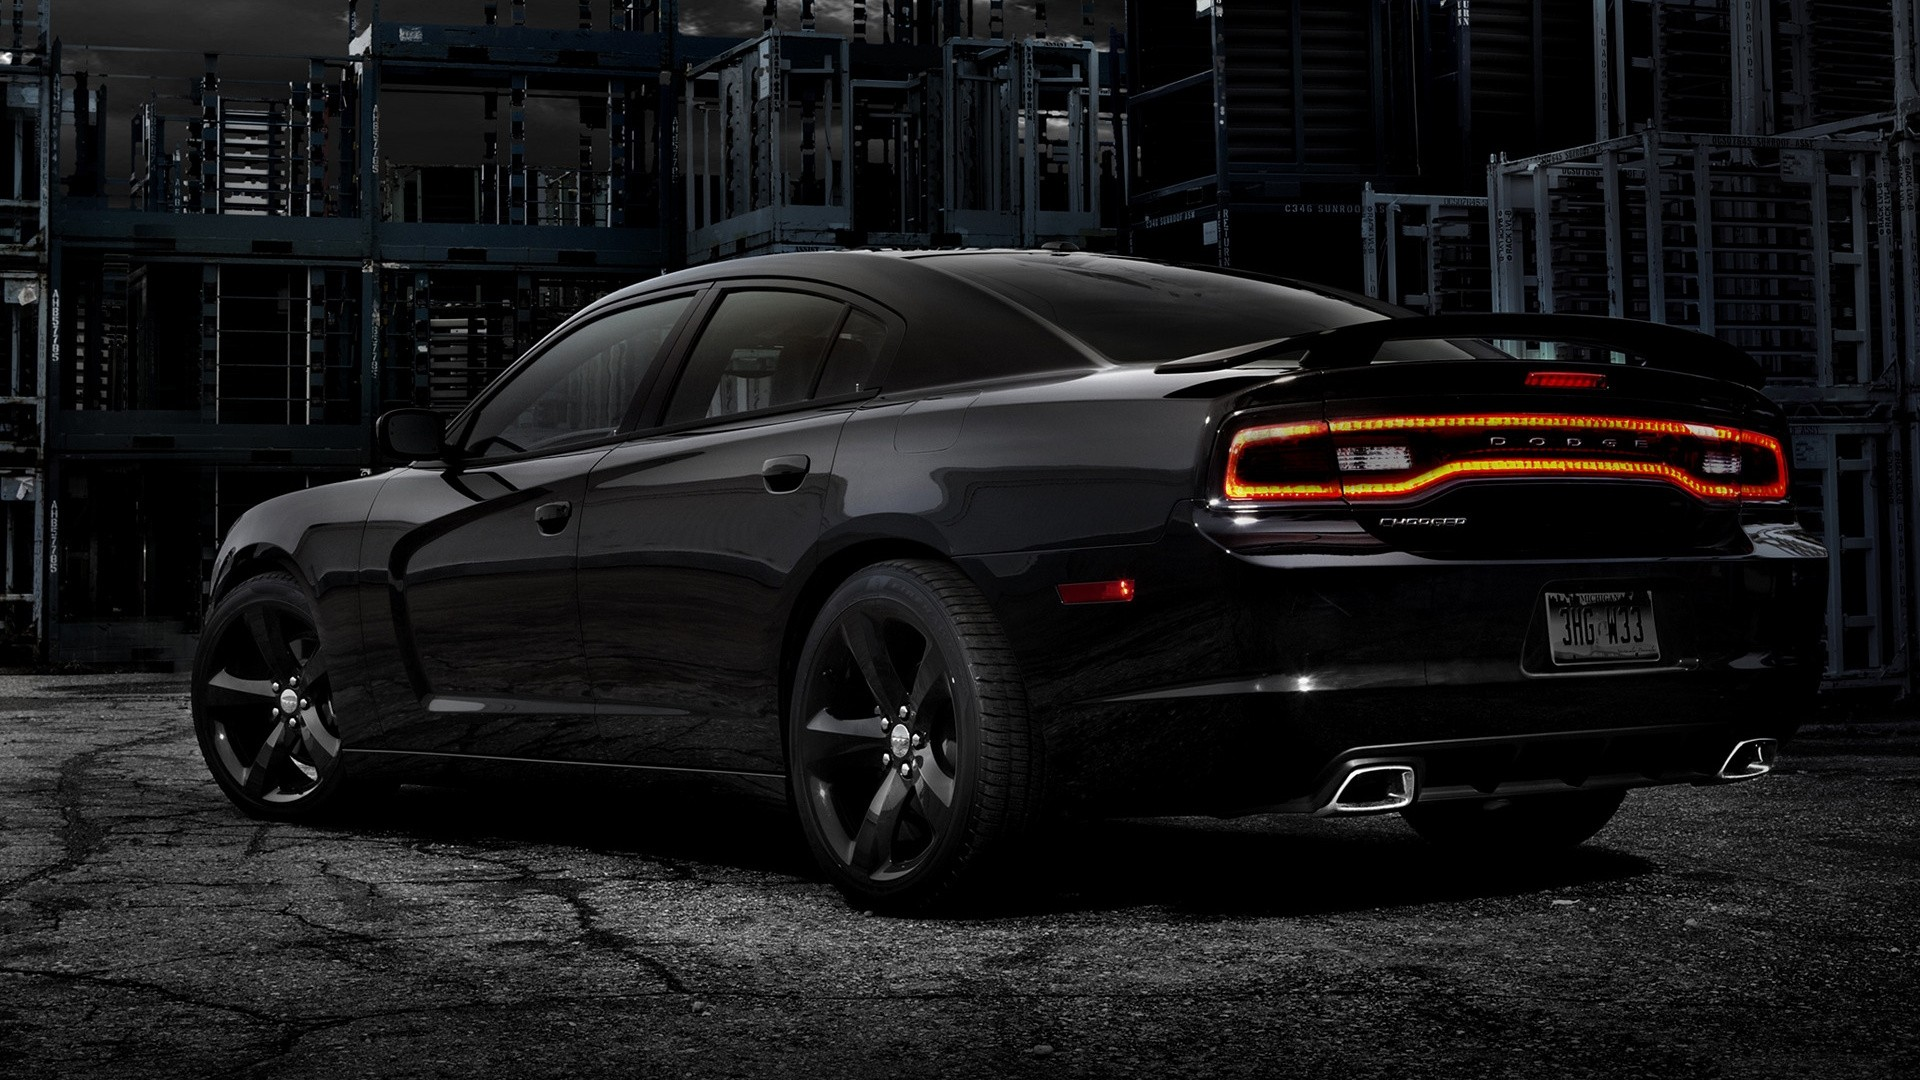 Dodge Charger Wallpaper Pic